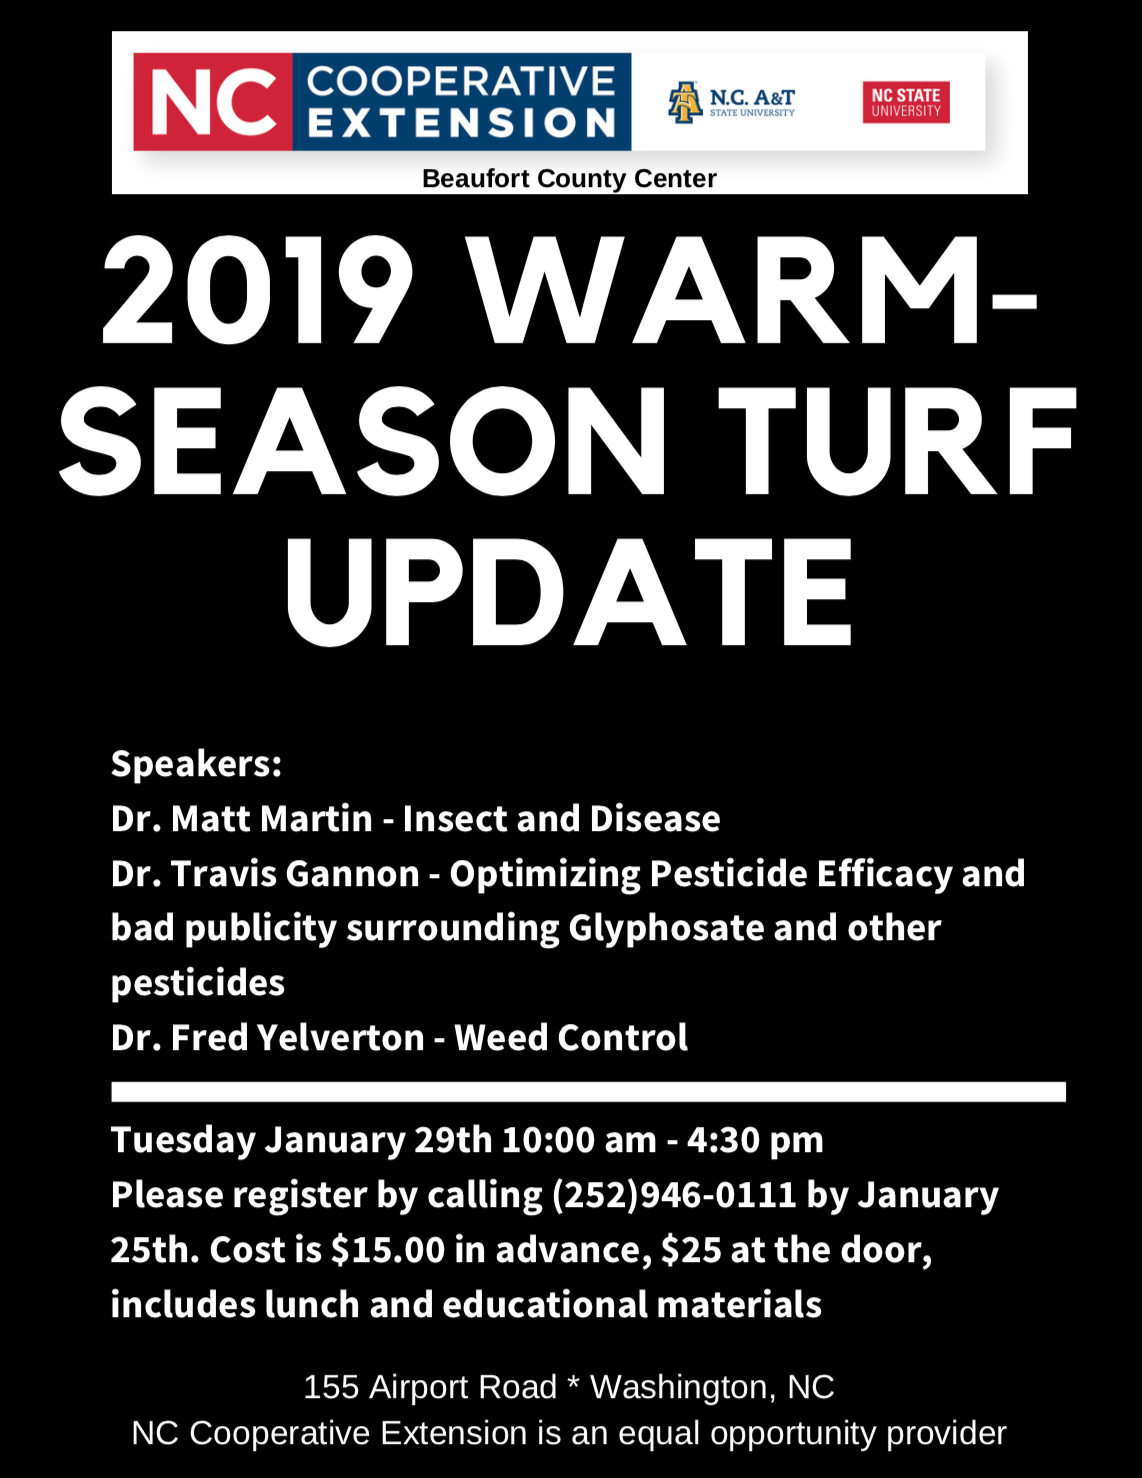 Turf update flyer image